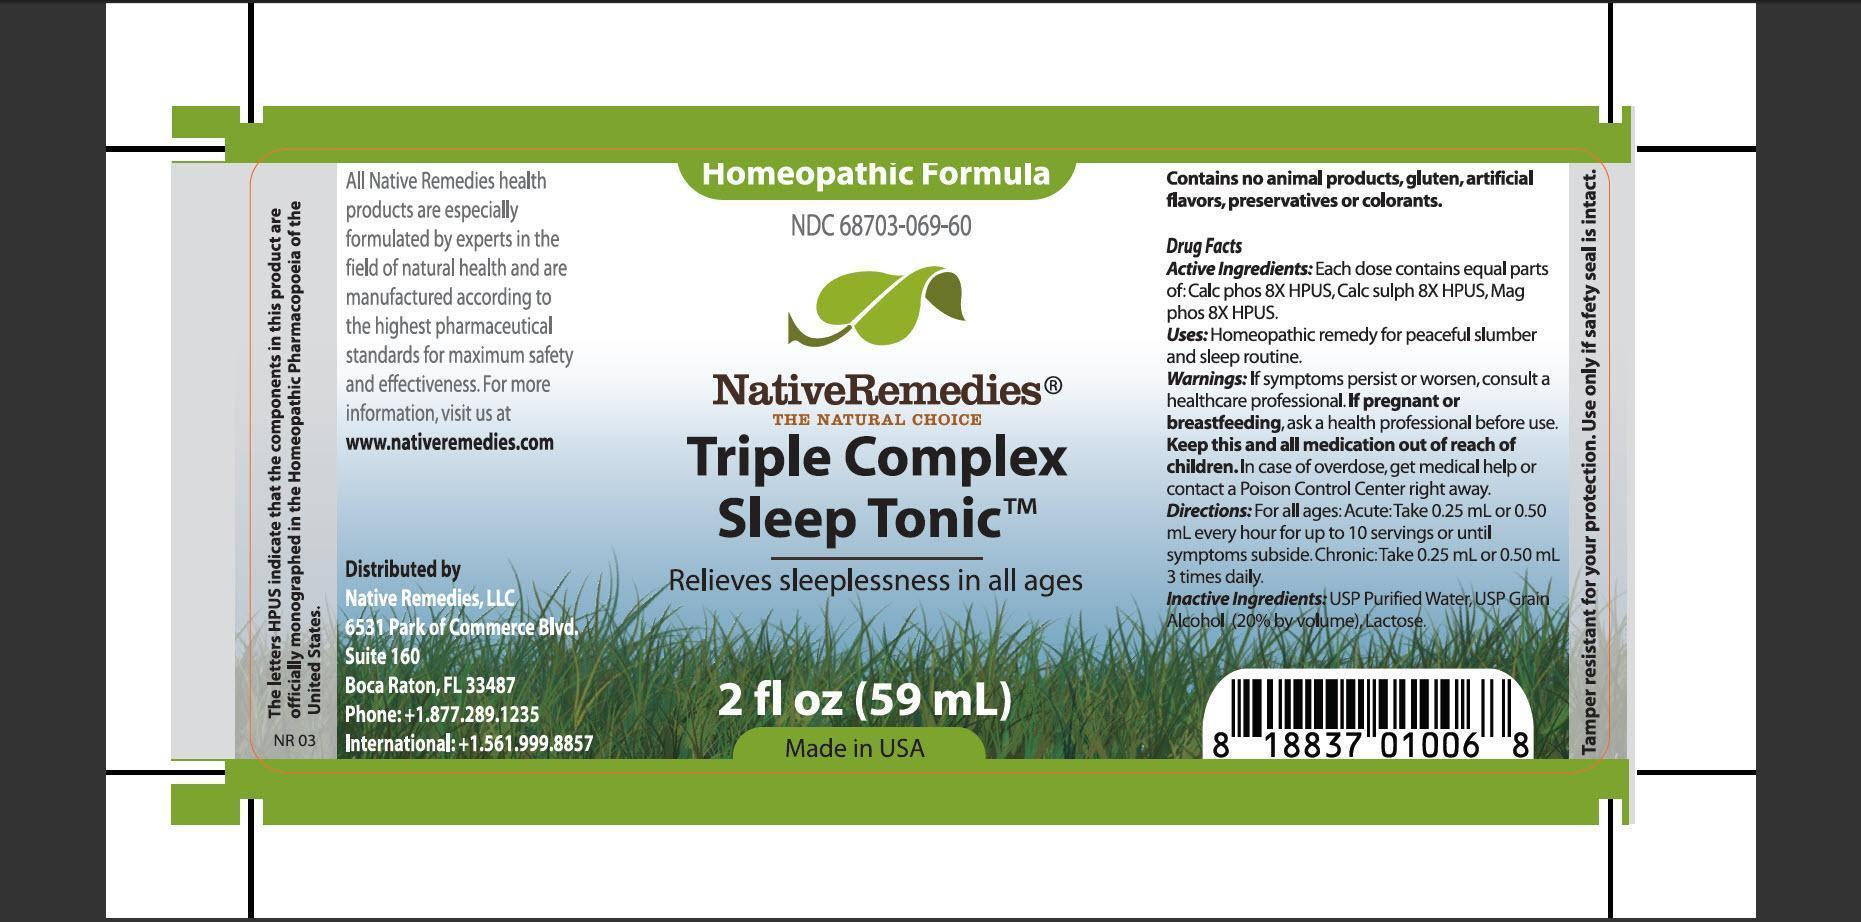 Triple Complex Sleep Tonic (Cacl Phos, Calc Sulph, Mag Phos) Tincture [Native Remedies, Llc]